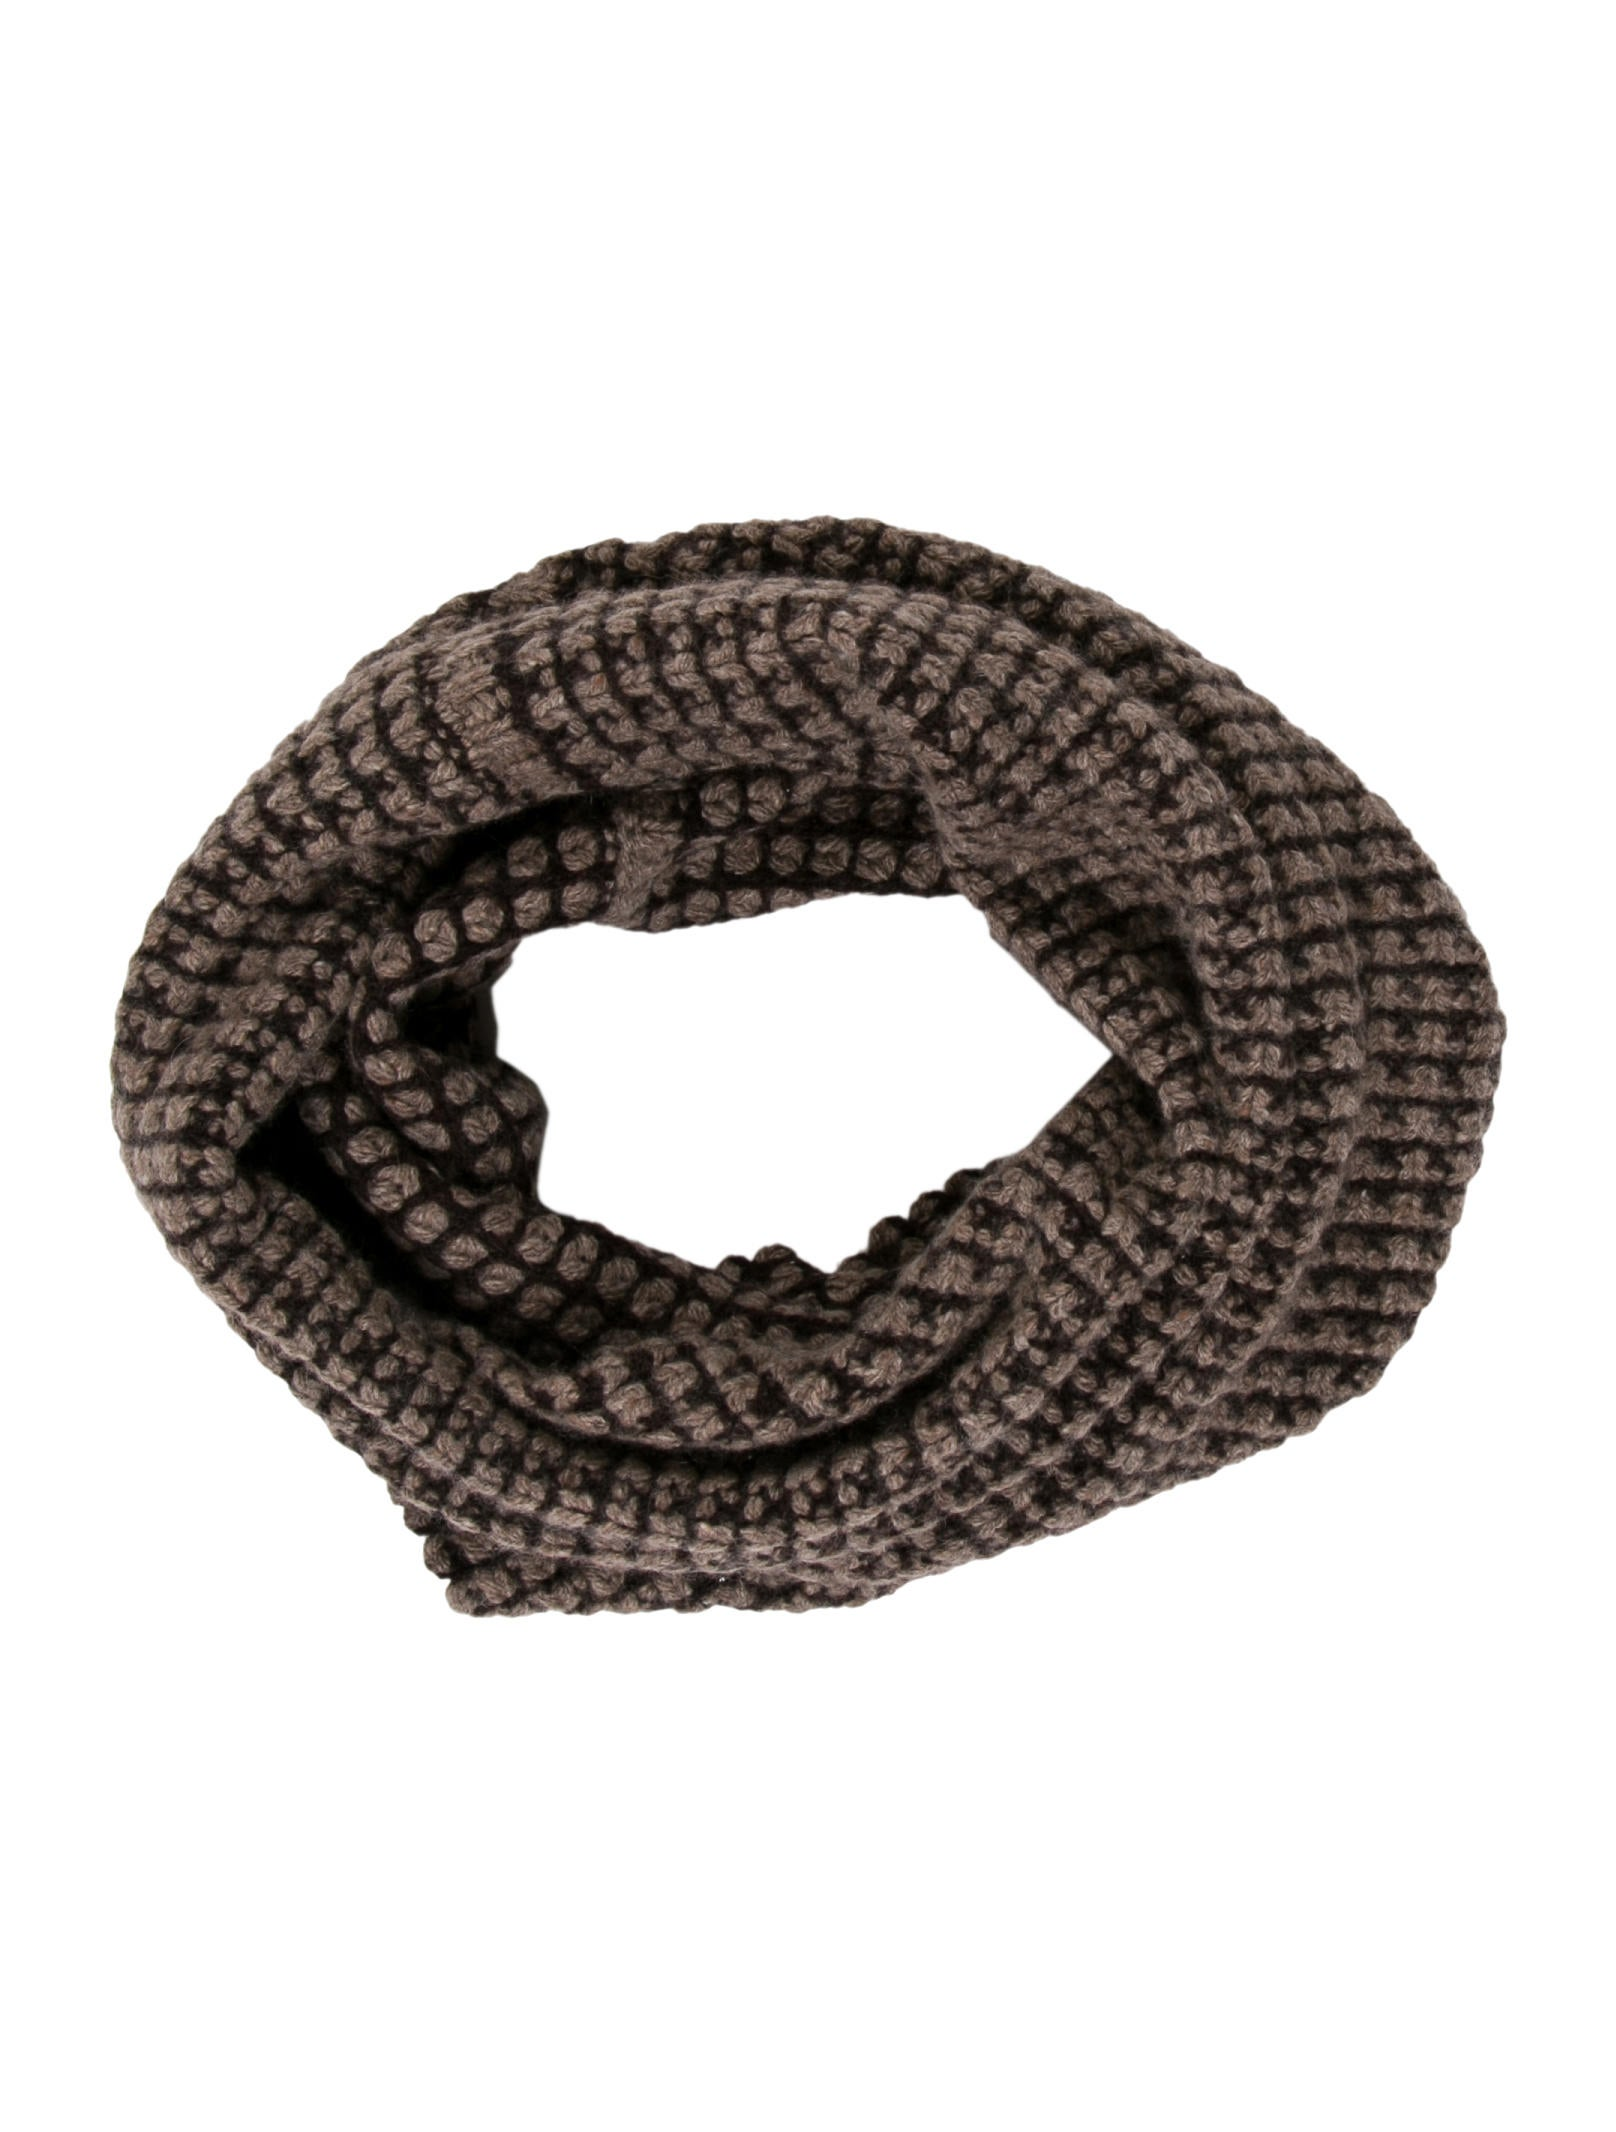 scarf free clothing s today womens women portolano cashmere overstock shoes infinity product shipping